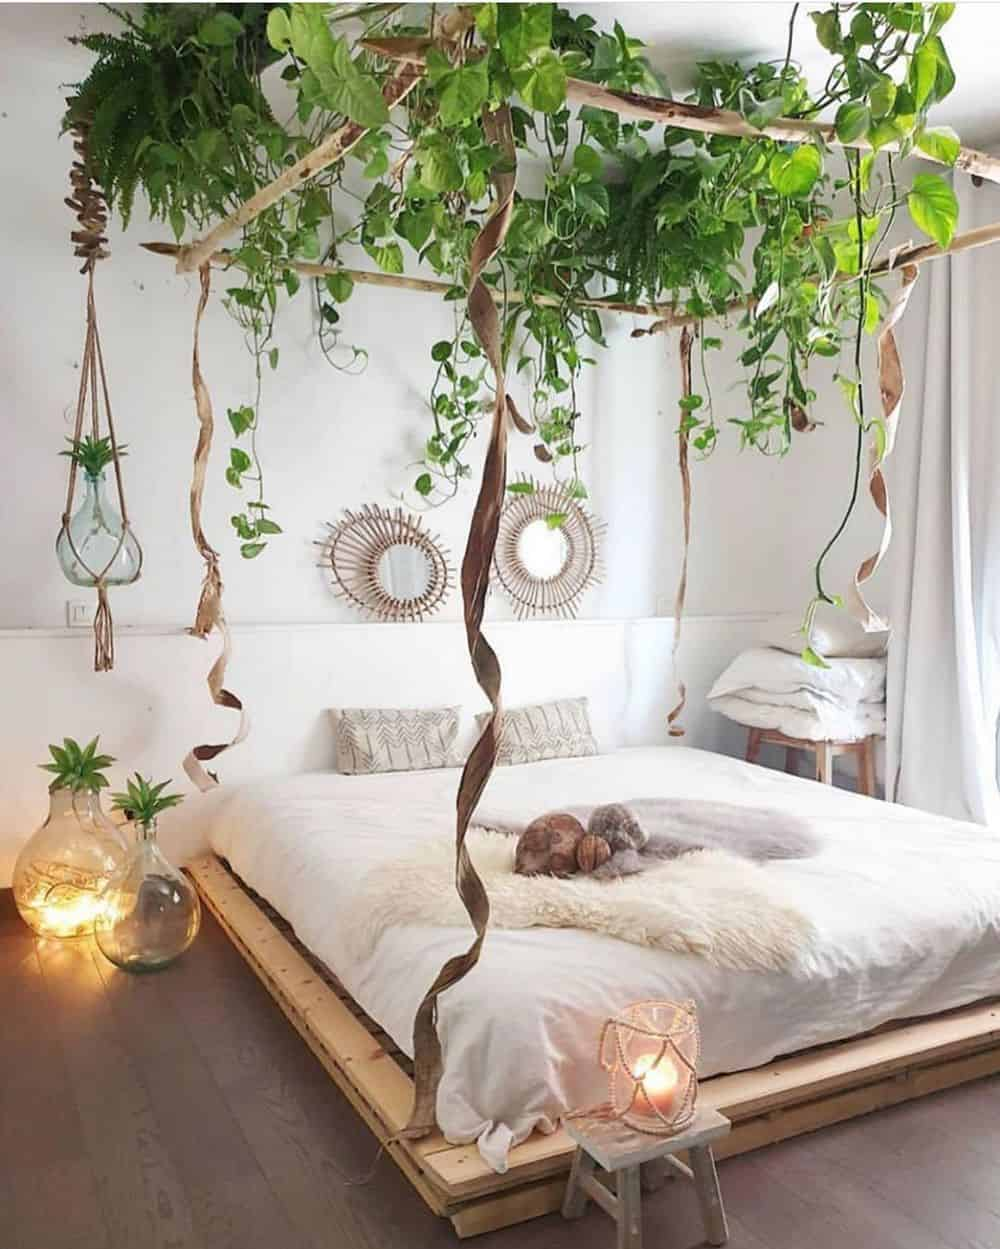 Cool Bedroom Ideas for the Ultimate Comfort - Bringing the Outdoors Inside